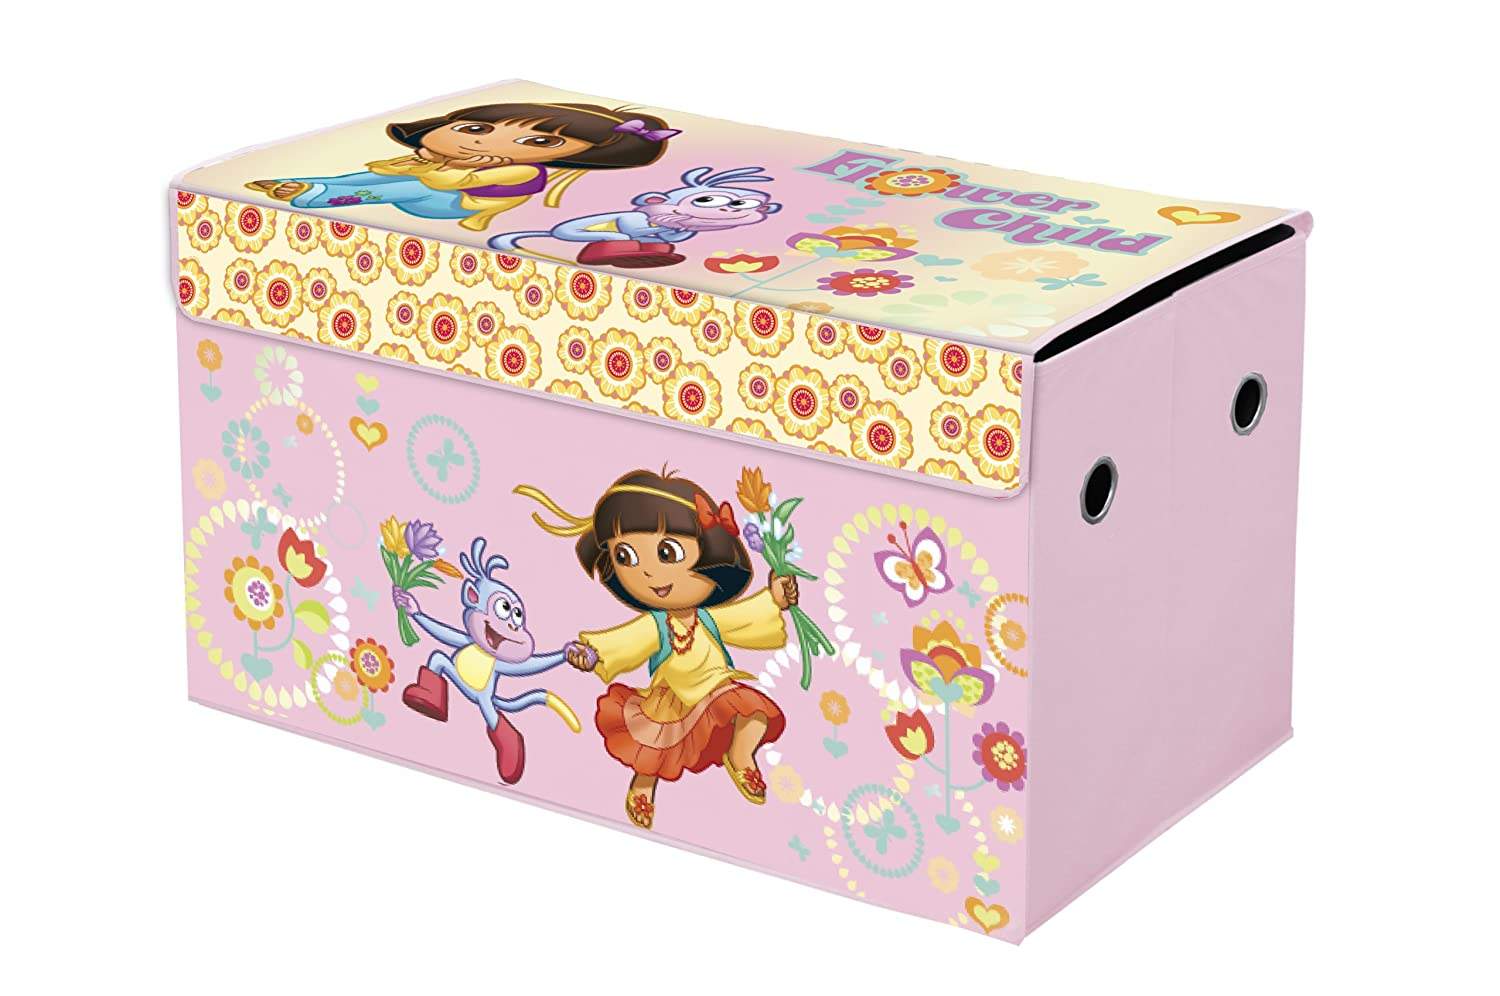 Lovely Amazon.com: Nickelodeon Dora The Explorer Collapsible Storage Trunk: Toys U0026  Games